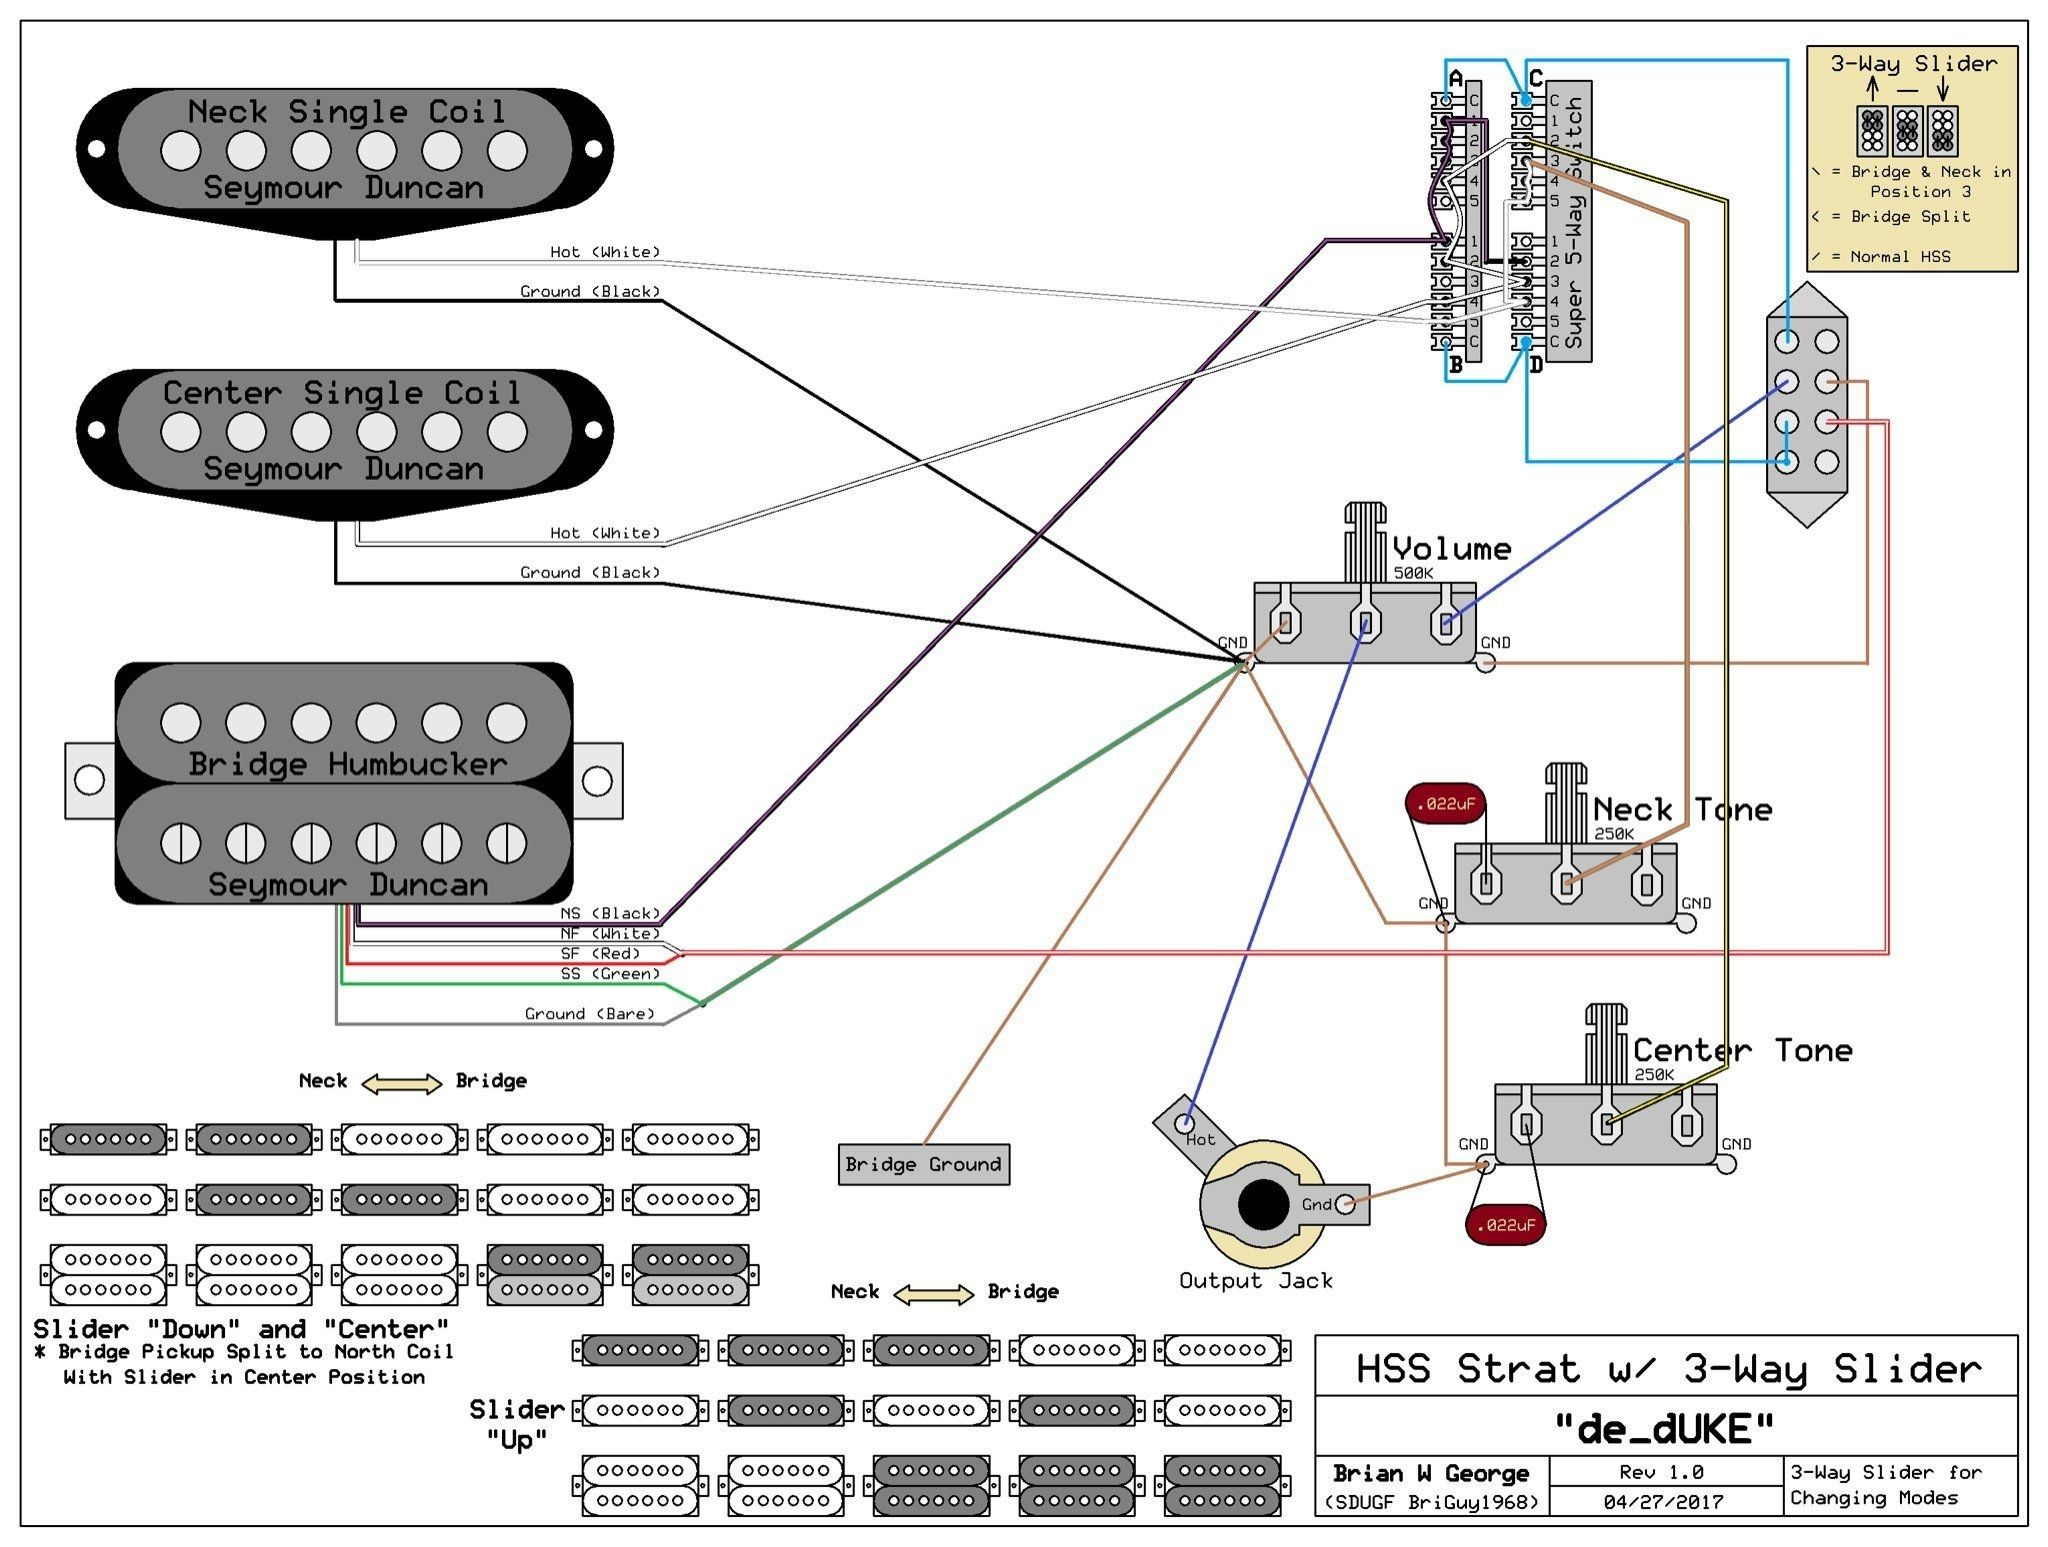 wiring diagrams for strat fresh wiring diagram guitar 3 way switch Wiring Schematic for Fender Stratocaster wiring diagrams for strat fresh wiring diagram guitar 3 way switch regarding fantastic strat hss wiring diagram 7705